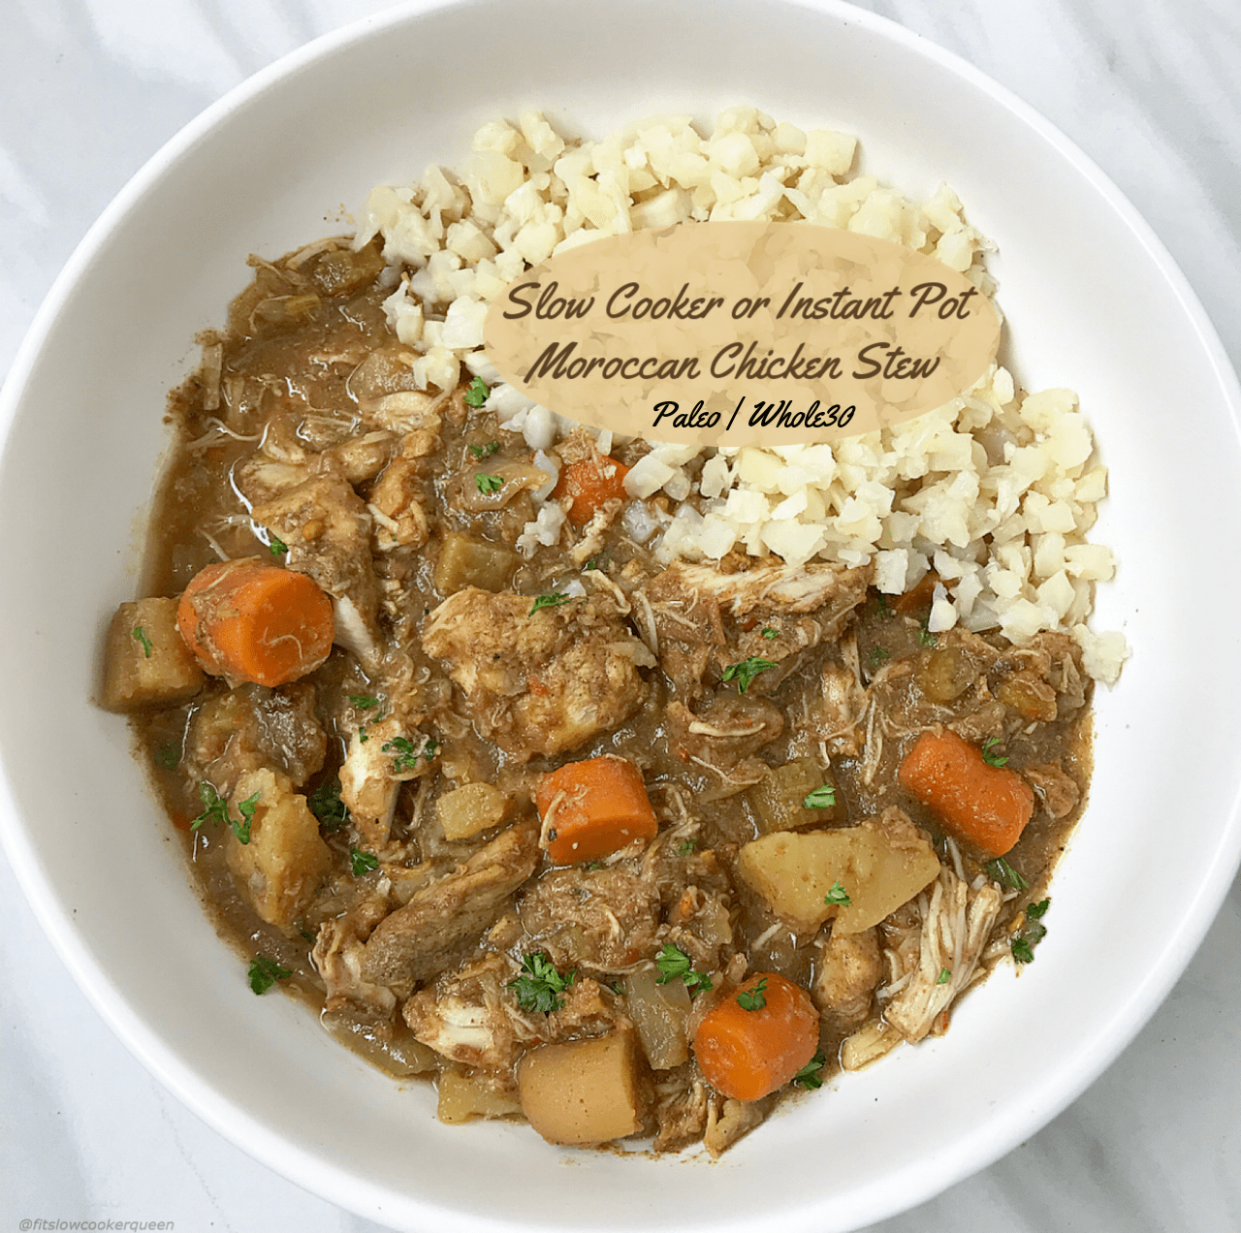 Slow Cooker/Instant Pot Moroccan Chicken Stew (Paleo,Whole10) - Stew Recipes Chicken